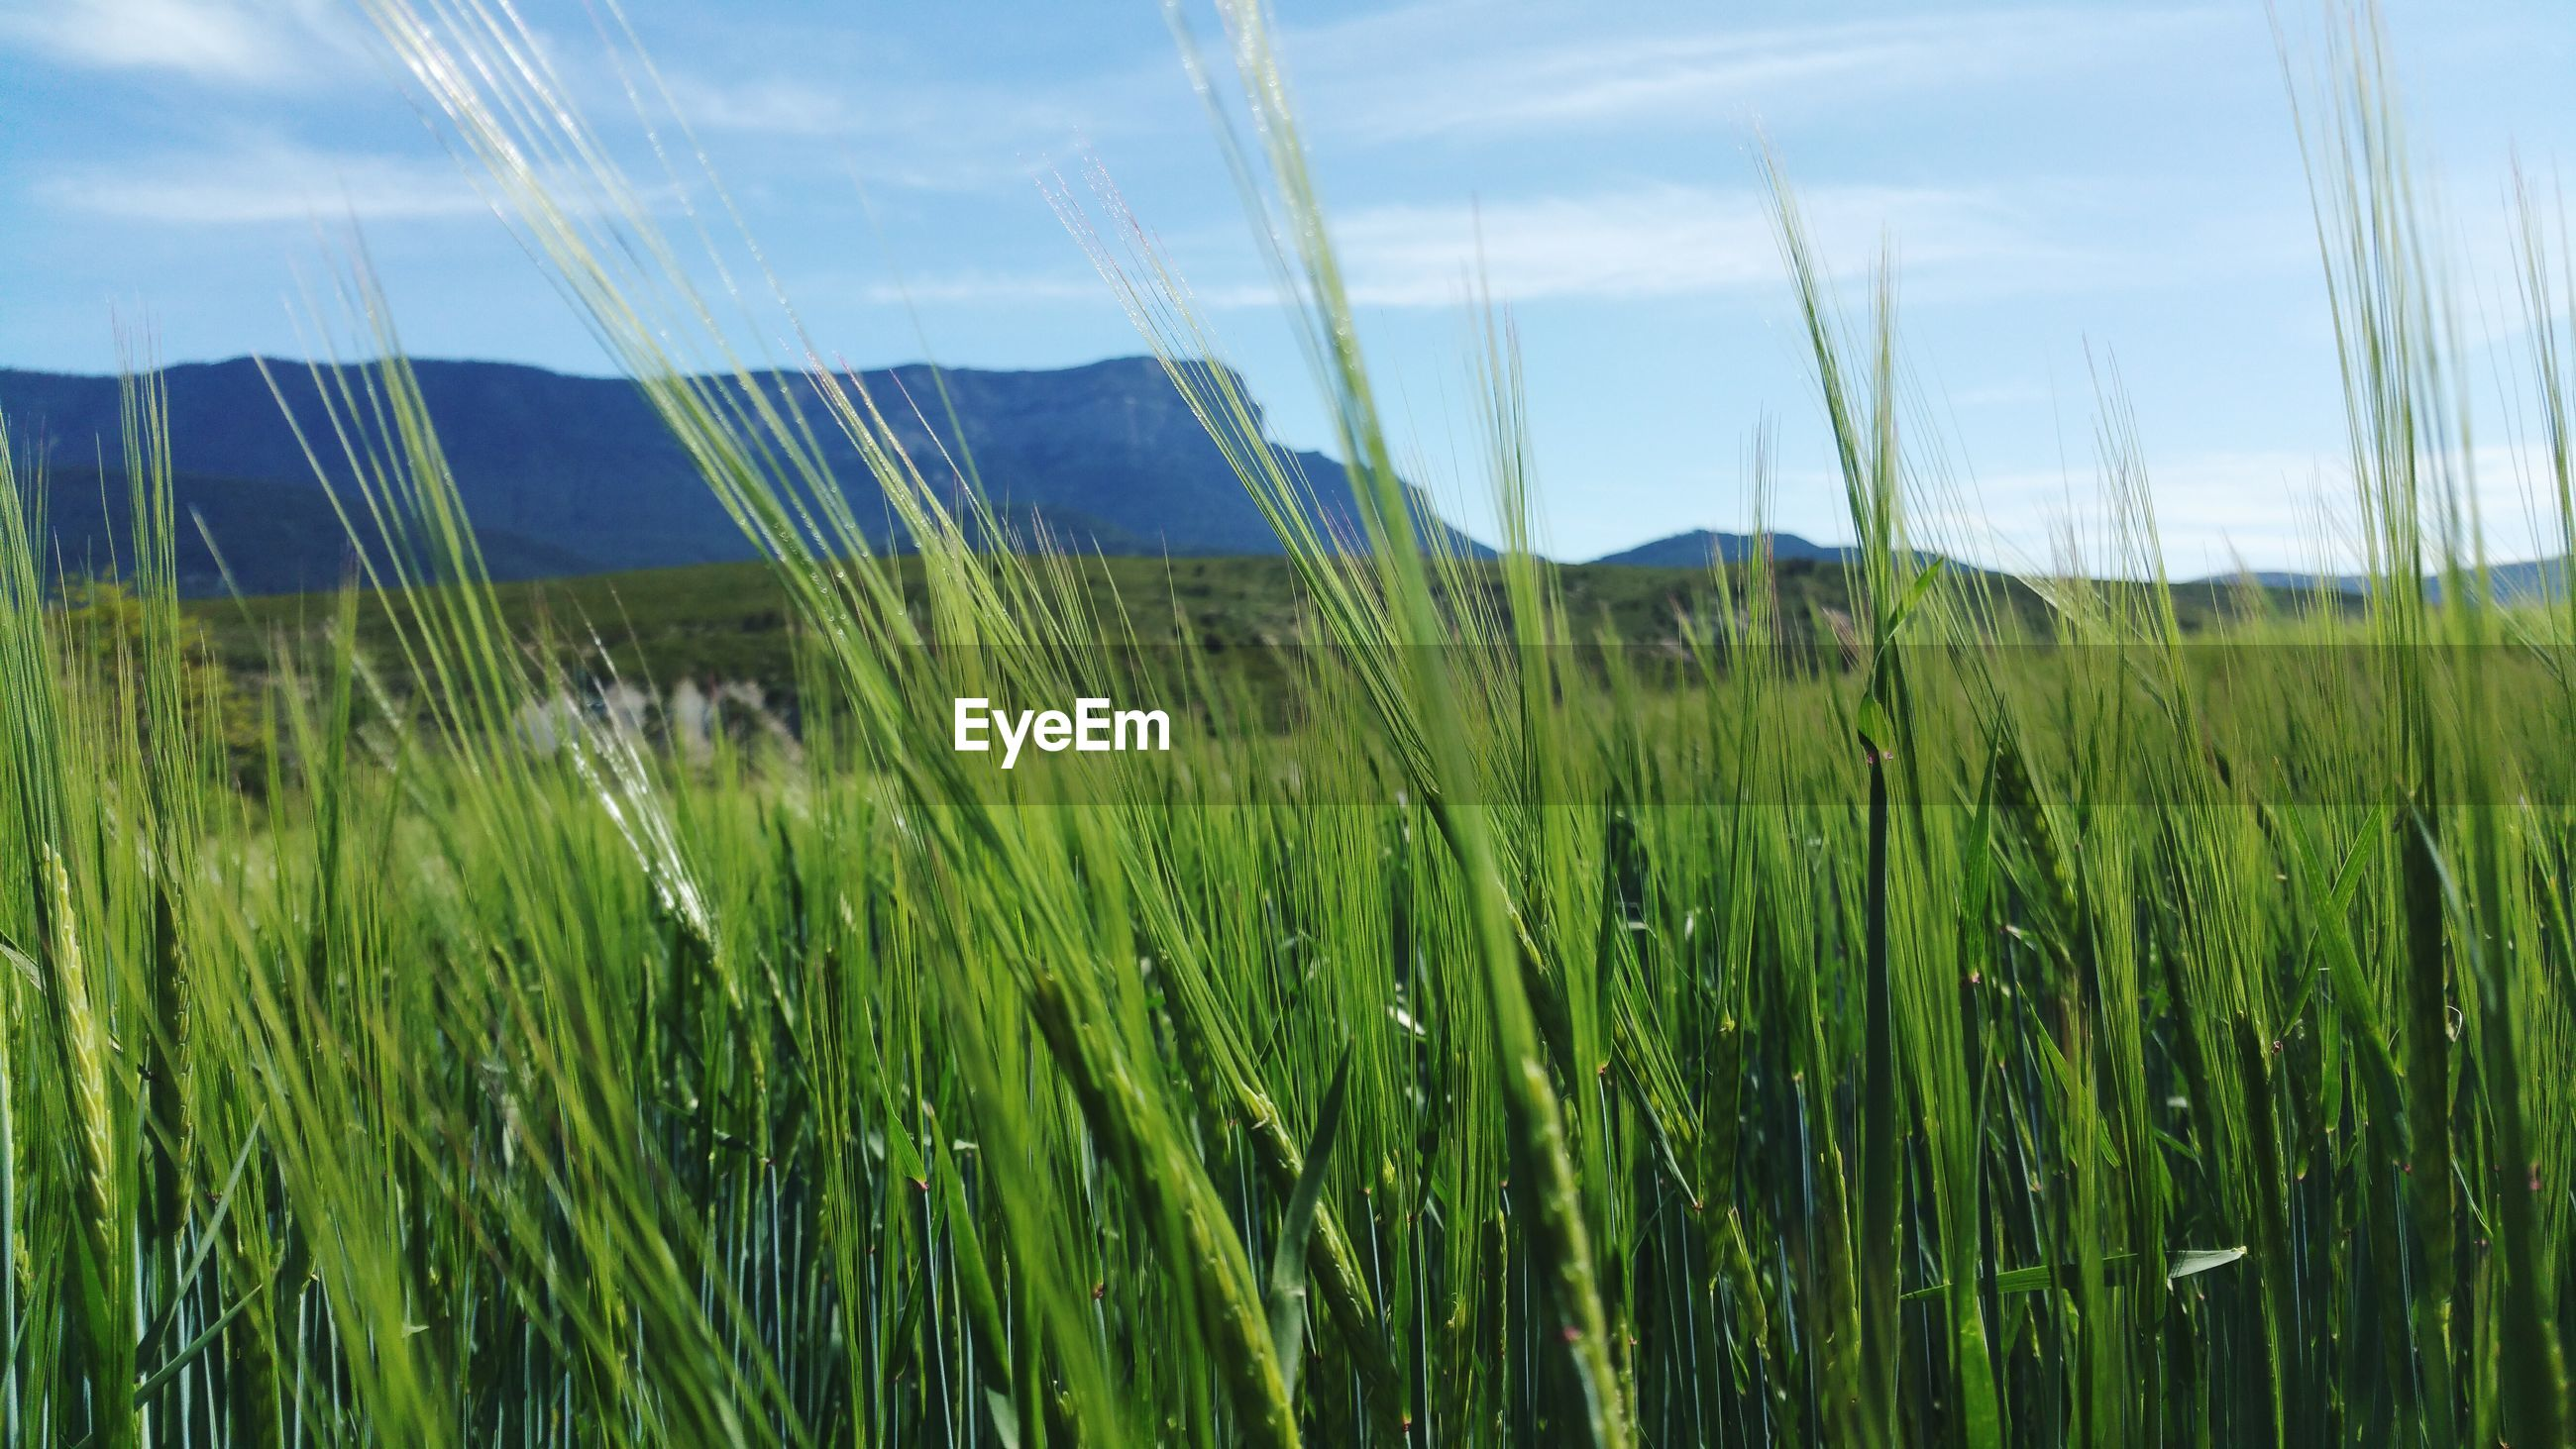 growth, field, grass, agriculture, rural scene, crop, sky, farm, green color, plant, nature, landscape, tranquility, cereal plant, beauty in nature, tranquil scene, cultivated land, day, growing, scenics